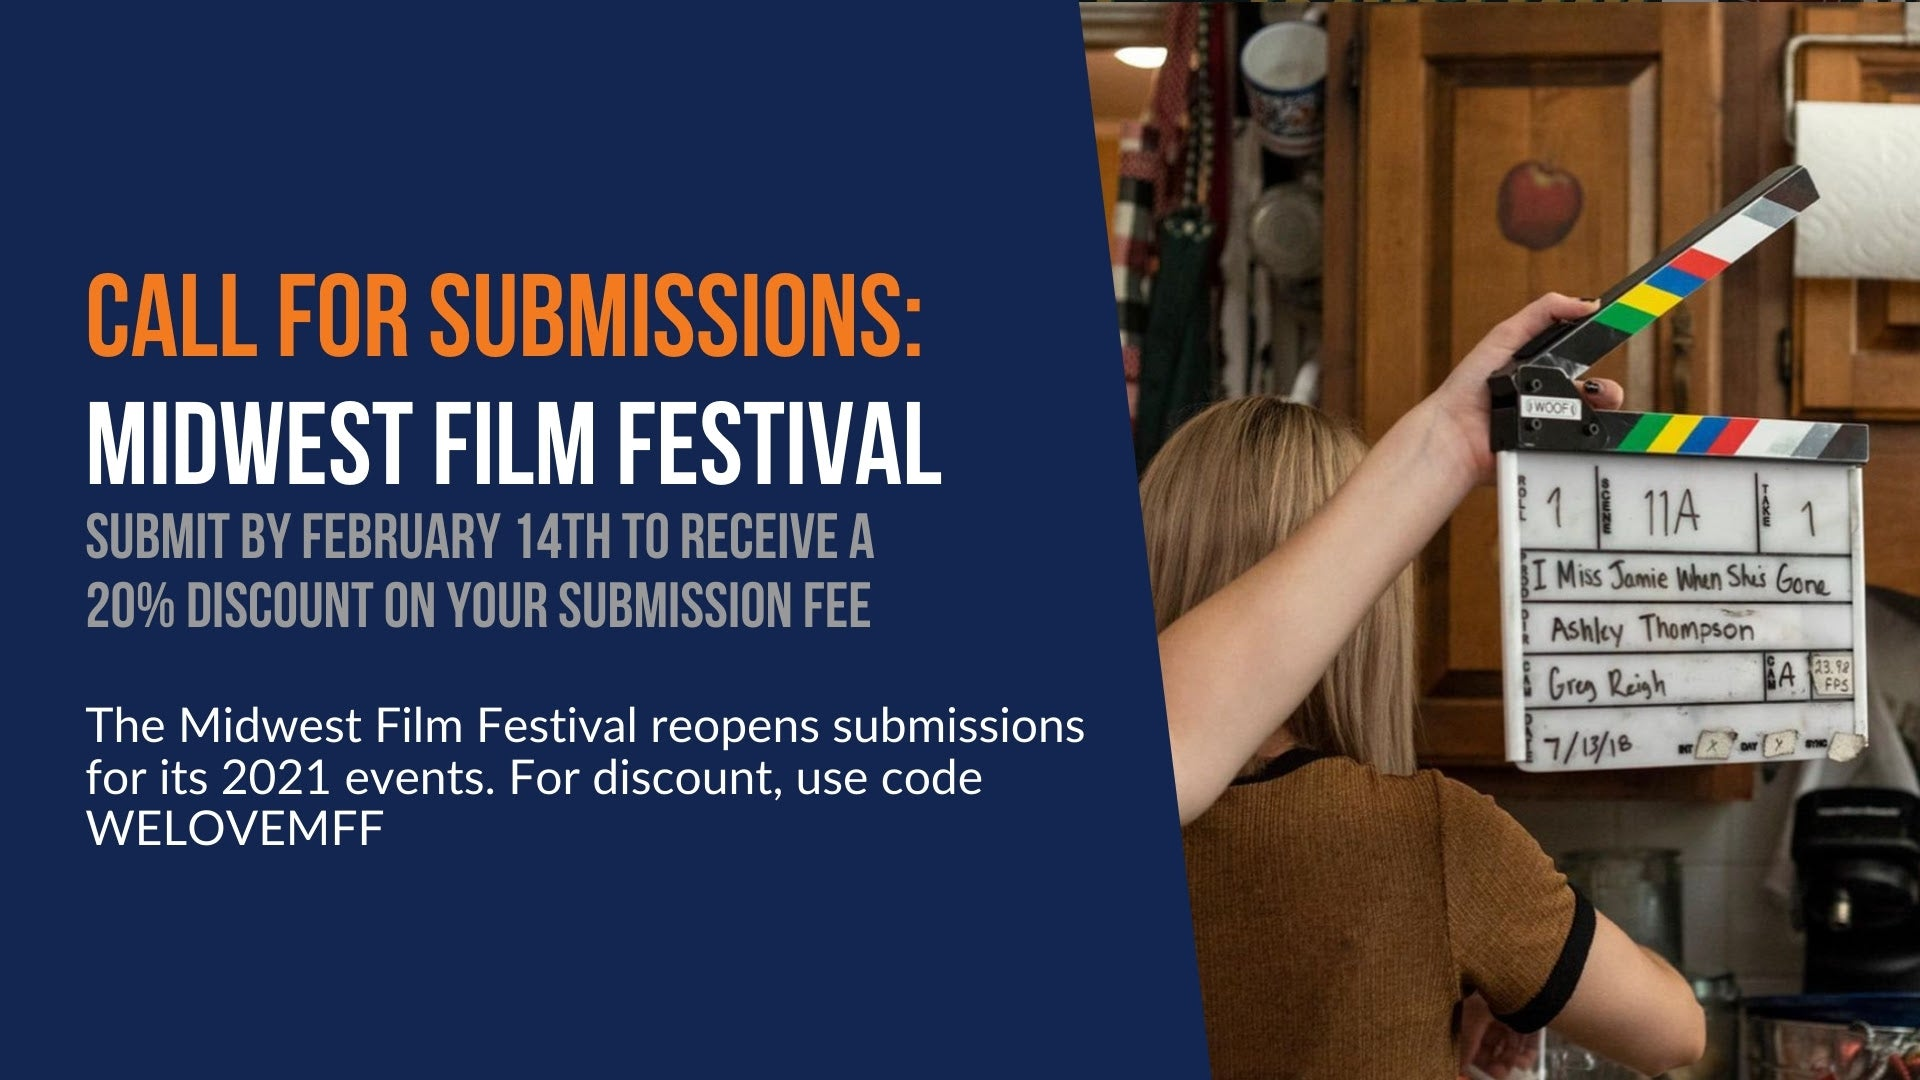 Call for Submissions: Midwest Film Festival. Submit by February 14th to receive a 20% discount on your submission fee. The Midwest Film Festival reopens submissions for its 2021 events. For discount, use code WELOVEMFF